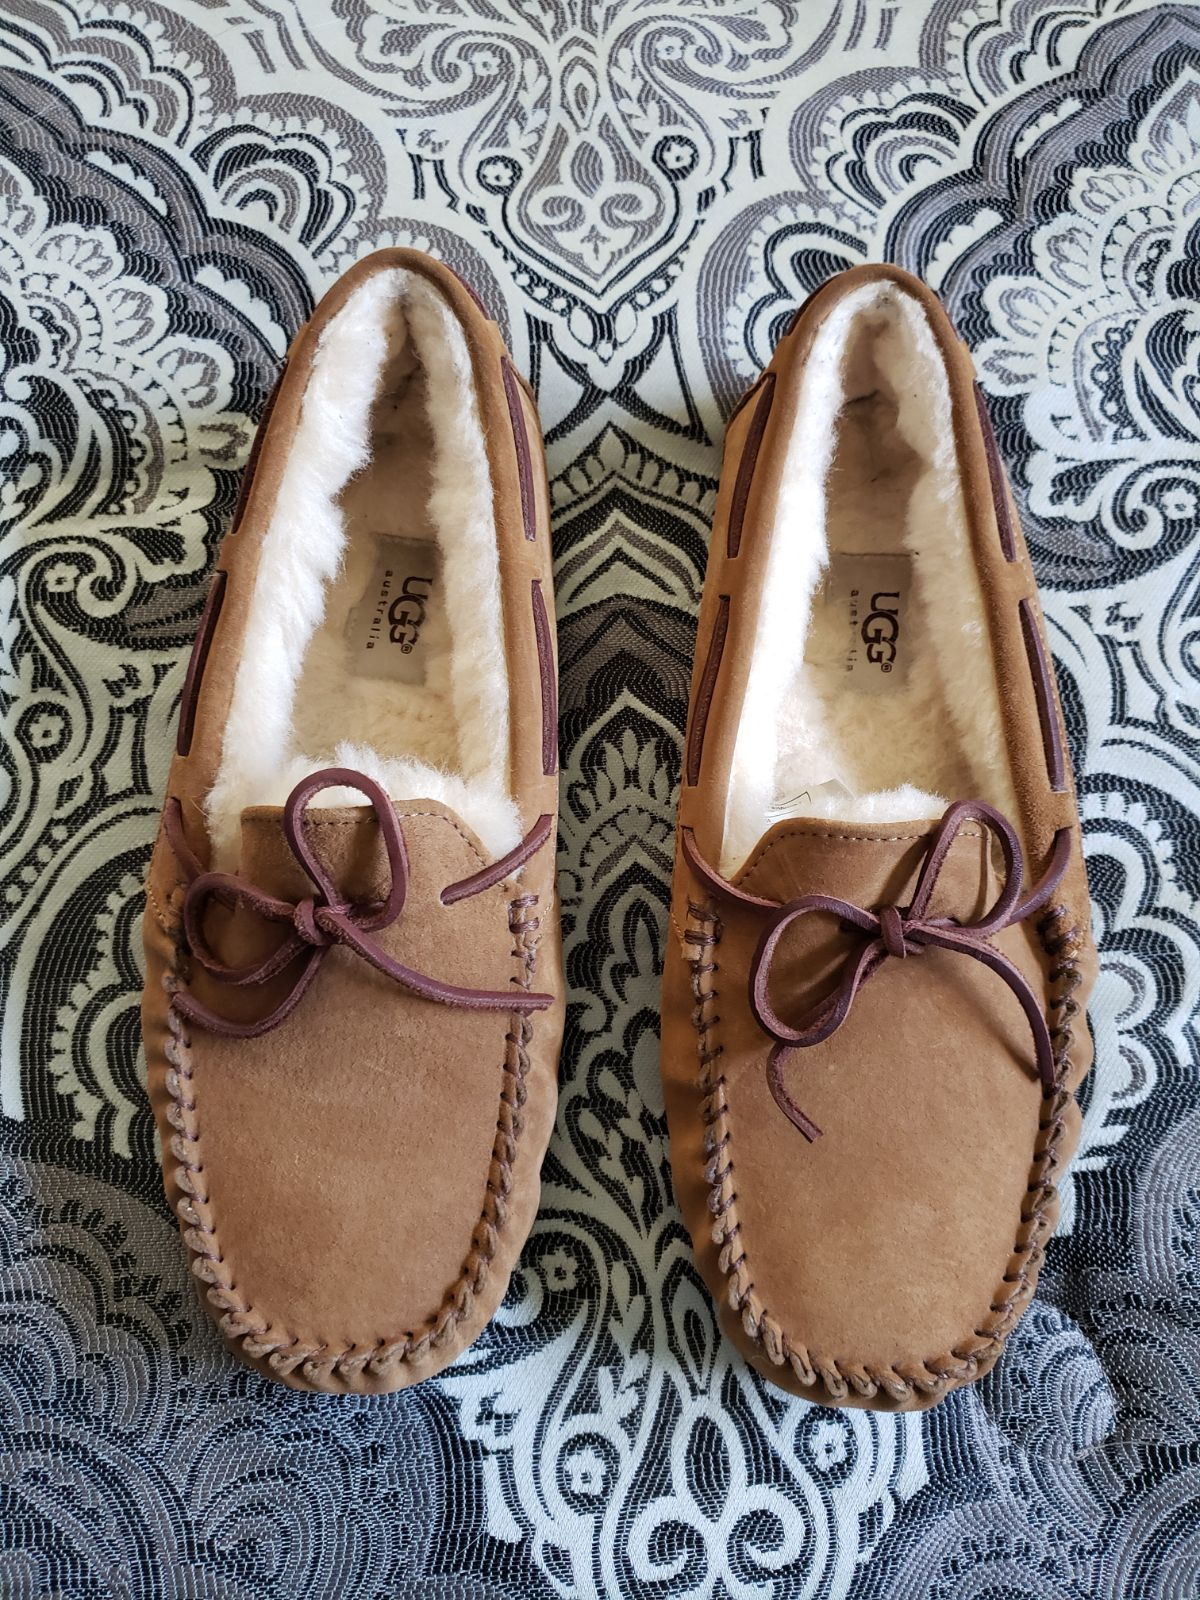 4718d80c32e Womens ugg moccasins size 9. In good condition. Light wear on the ...